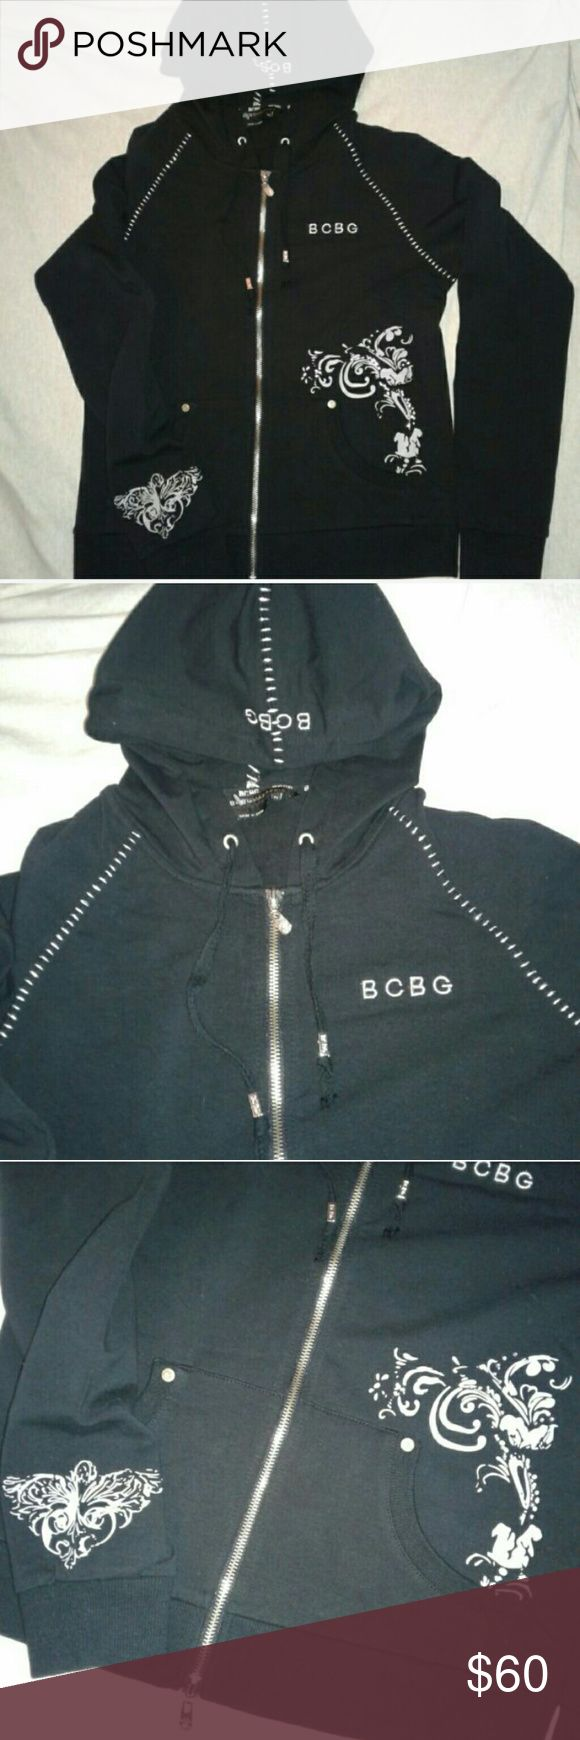 BCBGMAXAZRIA Women's Hoodie M BCBGMAXAZRIA Women's Hoodie New without Tag Never Worn....Size Medium, black in color with white design detail and rhinestone all stones are there... Original Price $140.00 BCBGMaxAzria Tops Sweatshirts & Hoodies